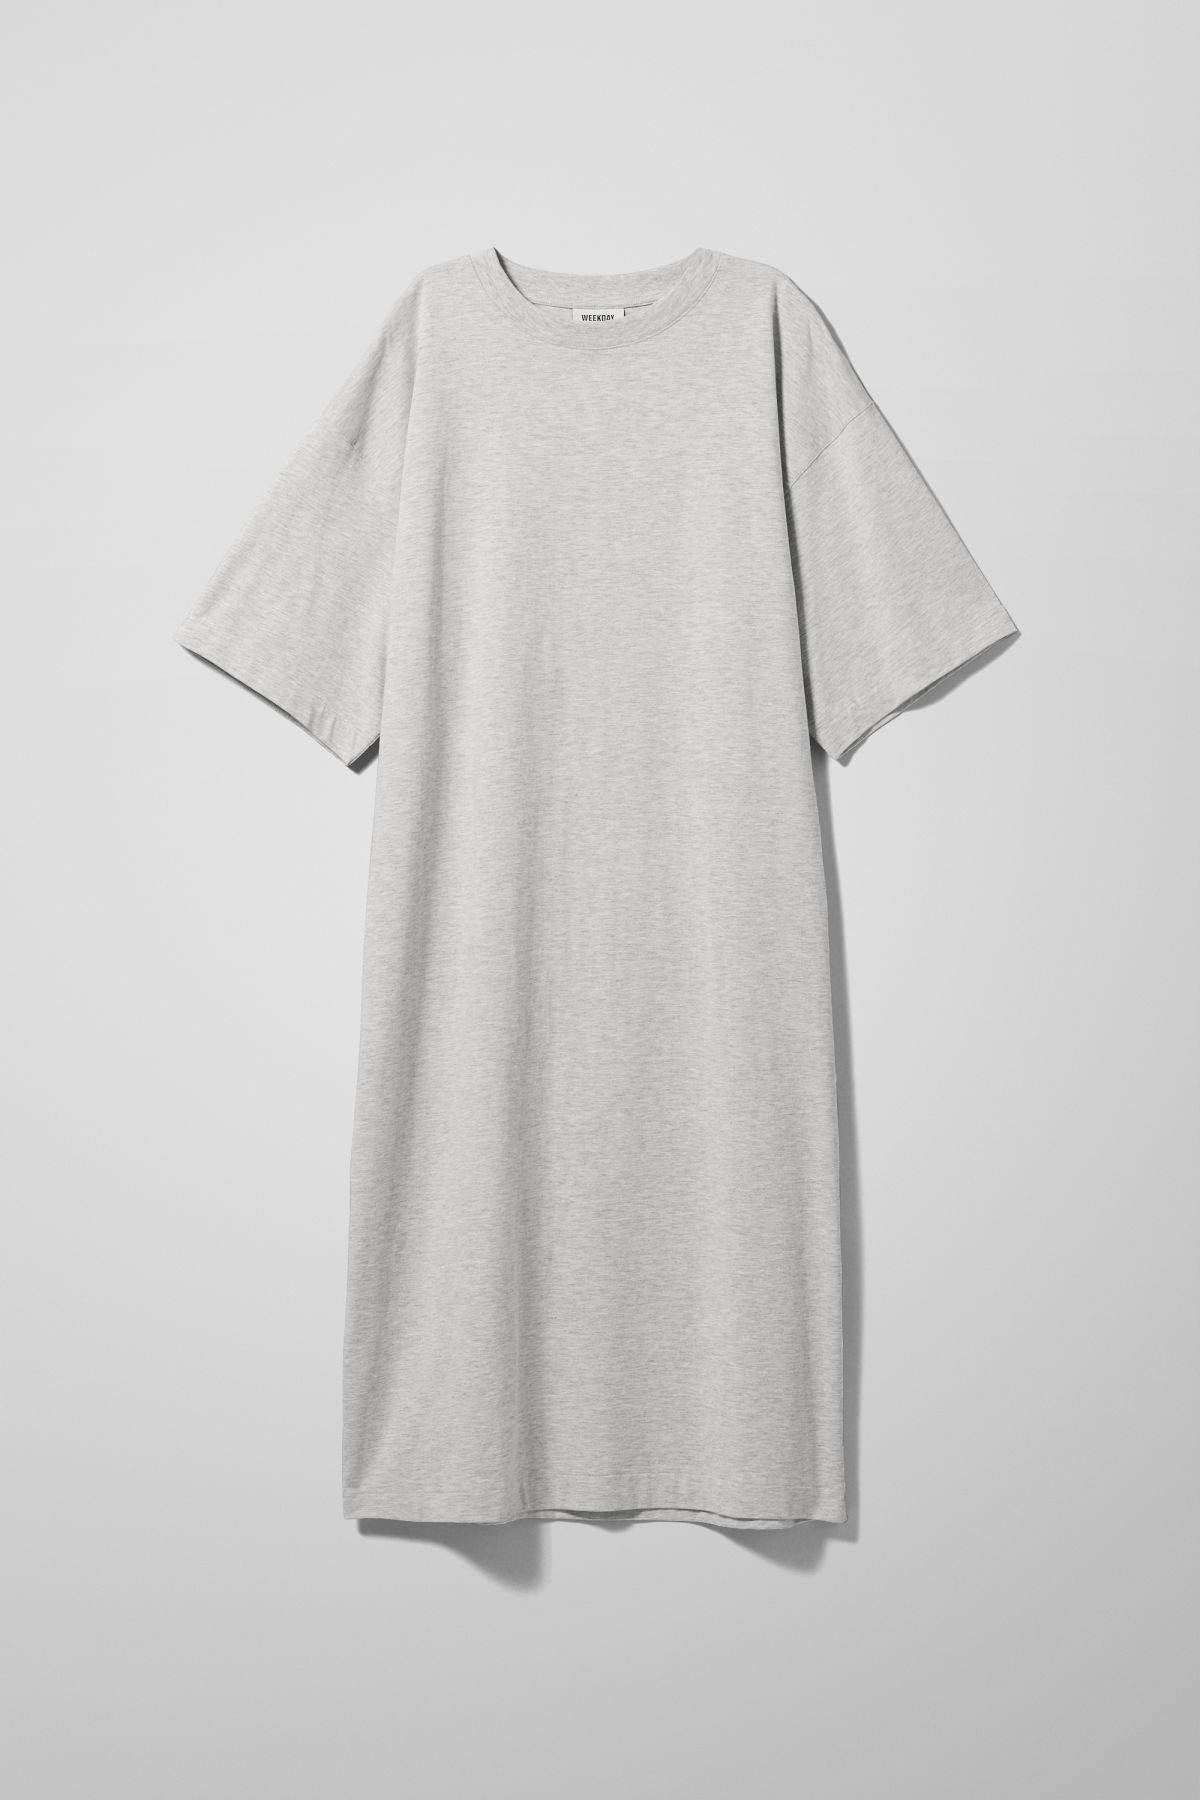 Image of Ines T-Shirt Dress - Grey-M